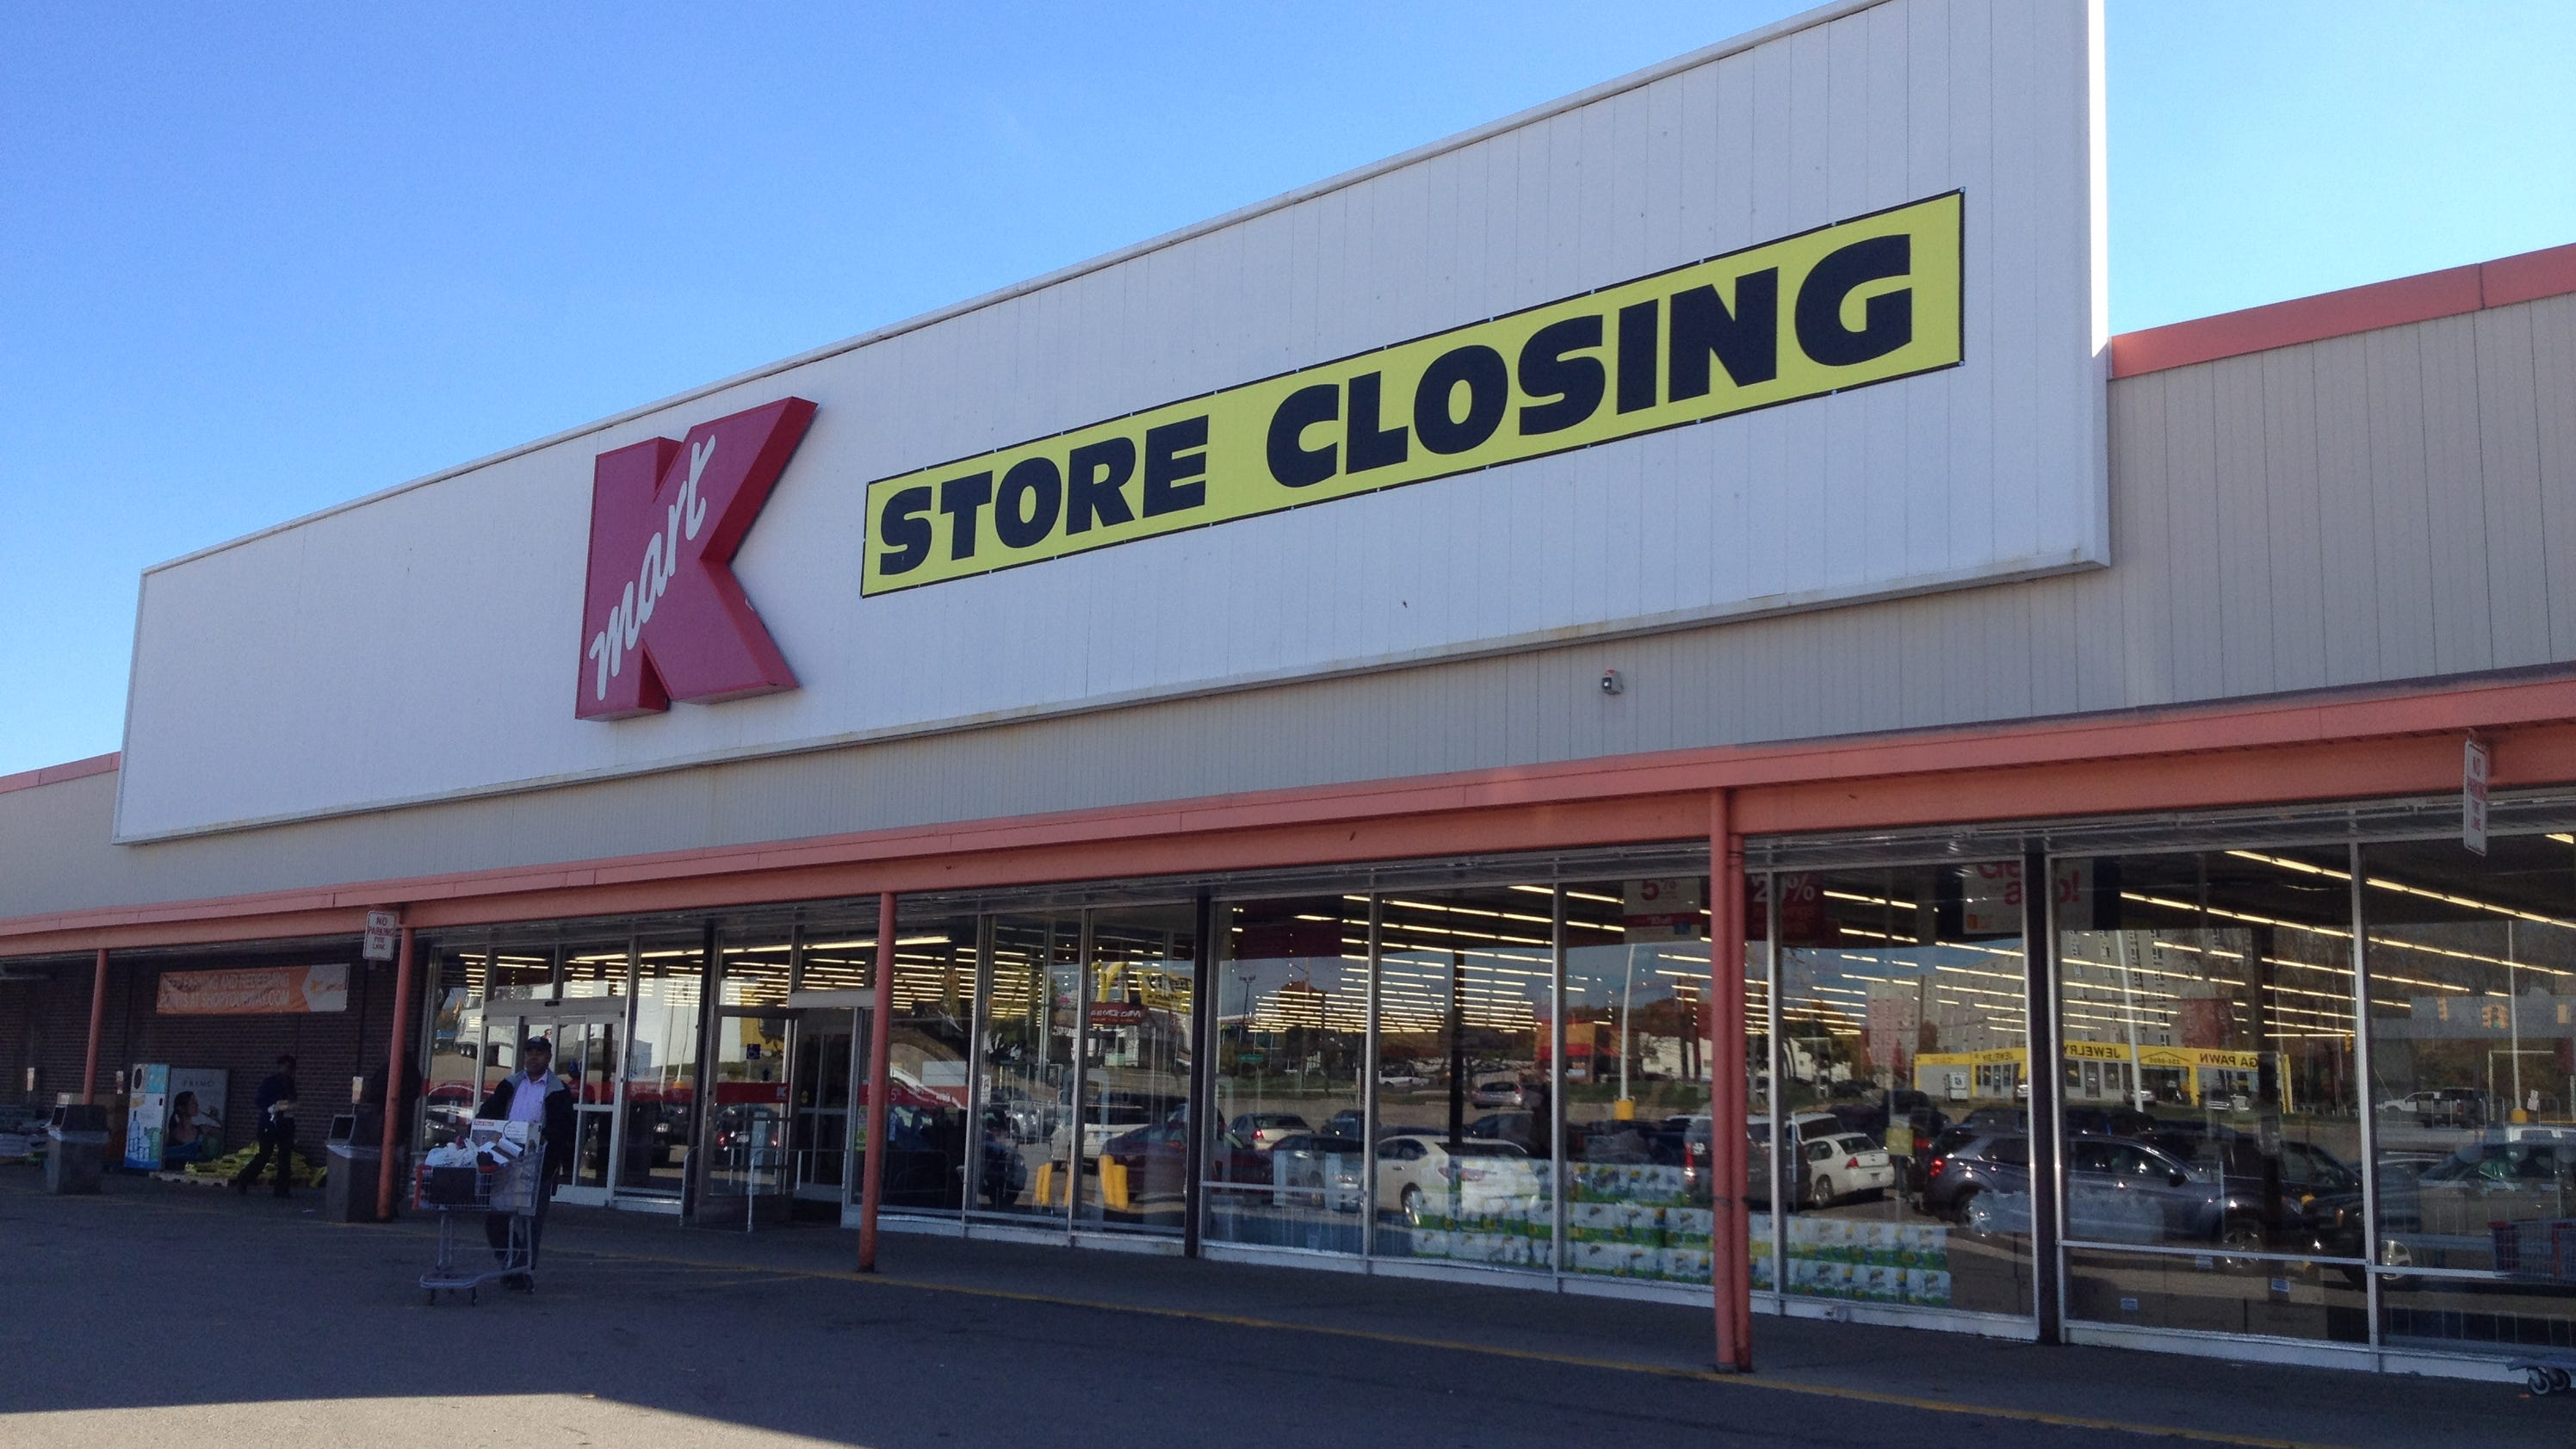 Oct 15, · Sears and Kmart's parent company filed for bankruptcy, and it plans to close of its worst-performing stores. Sears and Kmart's parent company filed for bankruptcy, and it .